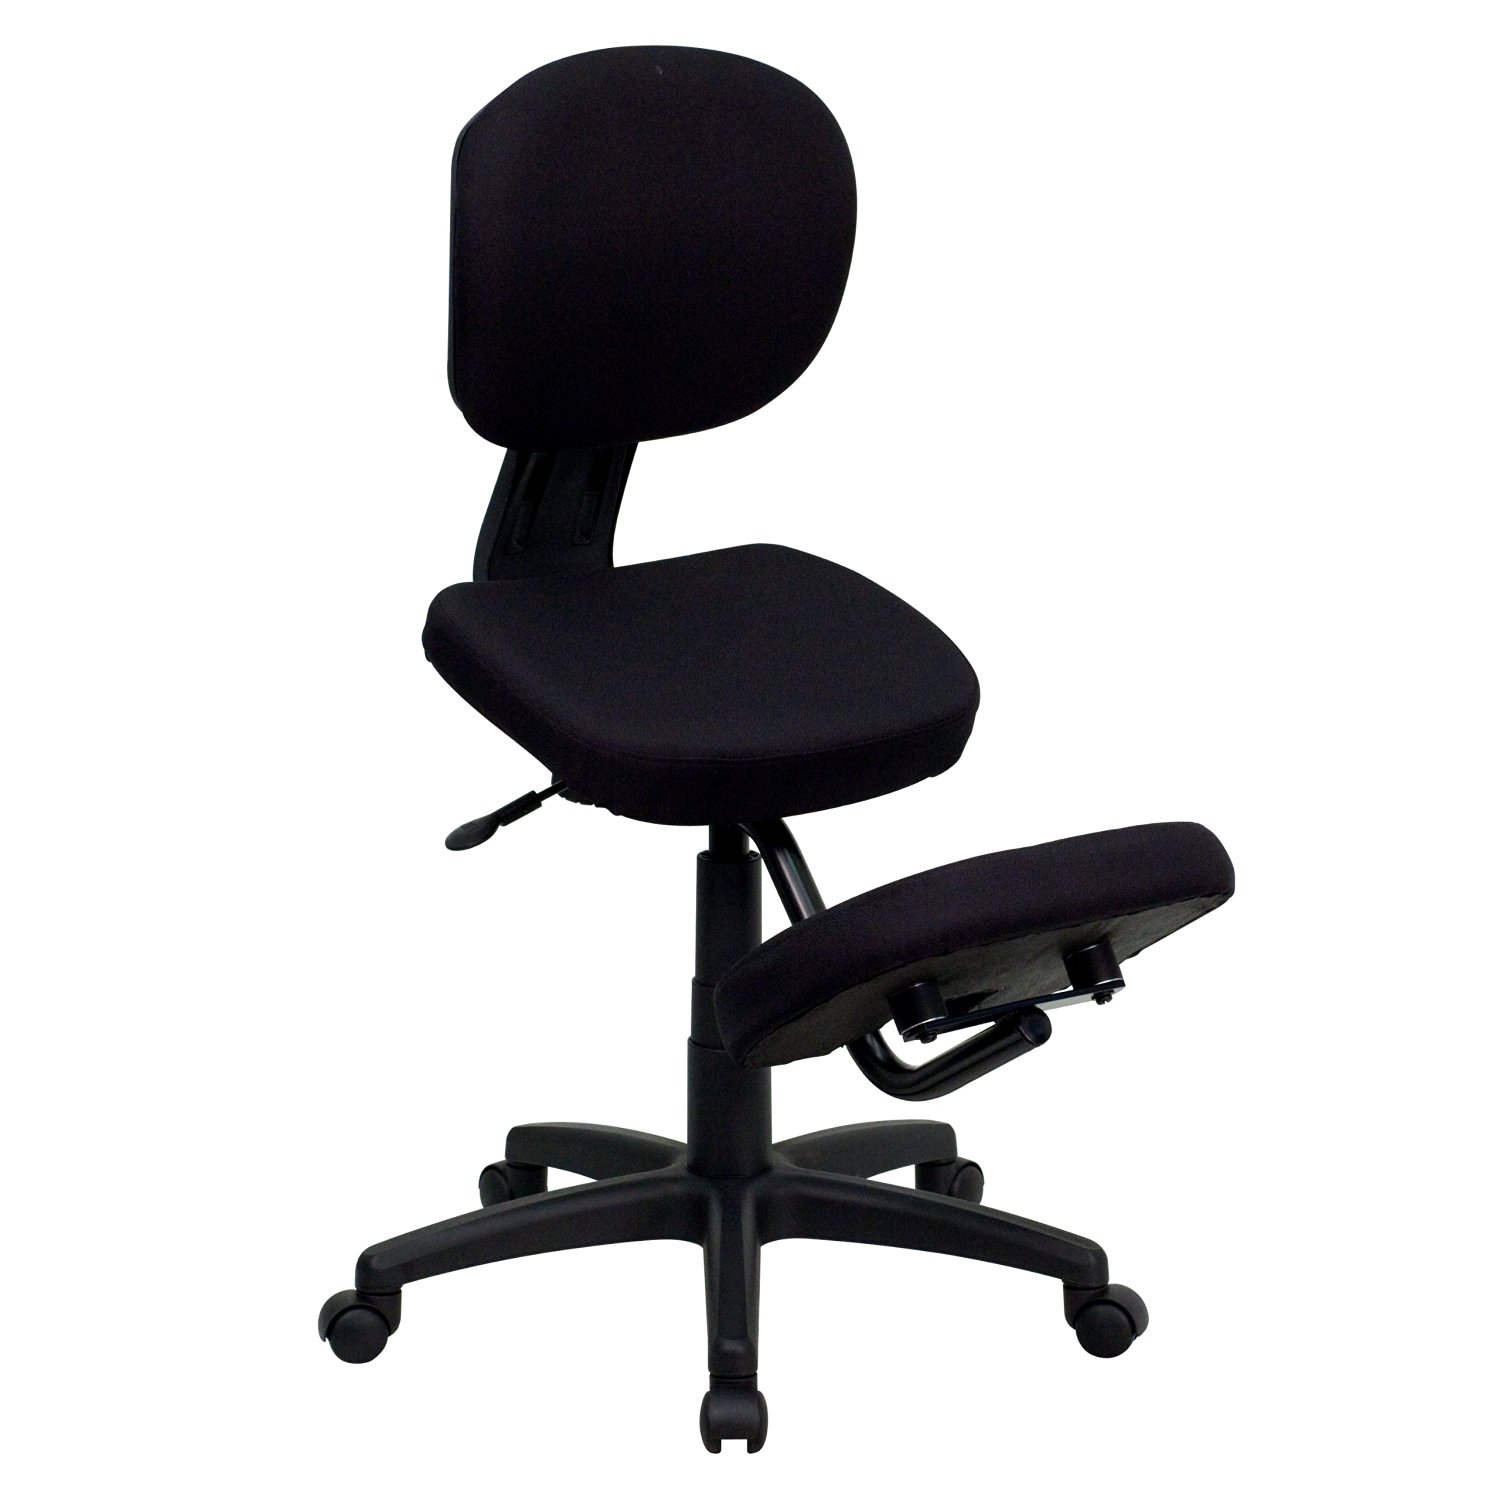 My Friendly Office MFO Mobile Ergonomic Kneeling Posture Task Chair in Black Fabric with Back